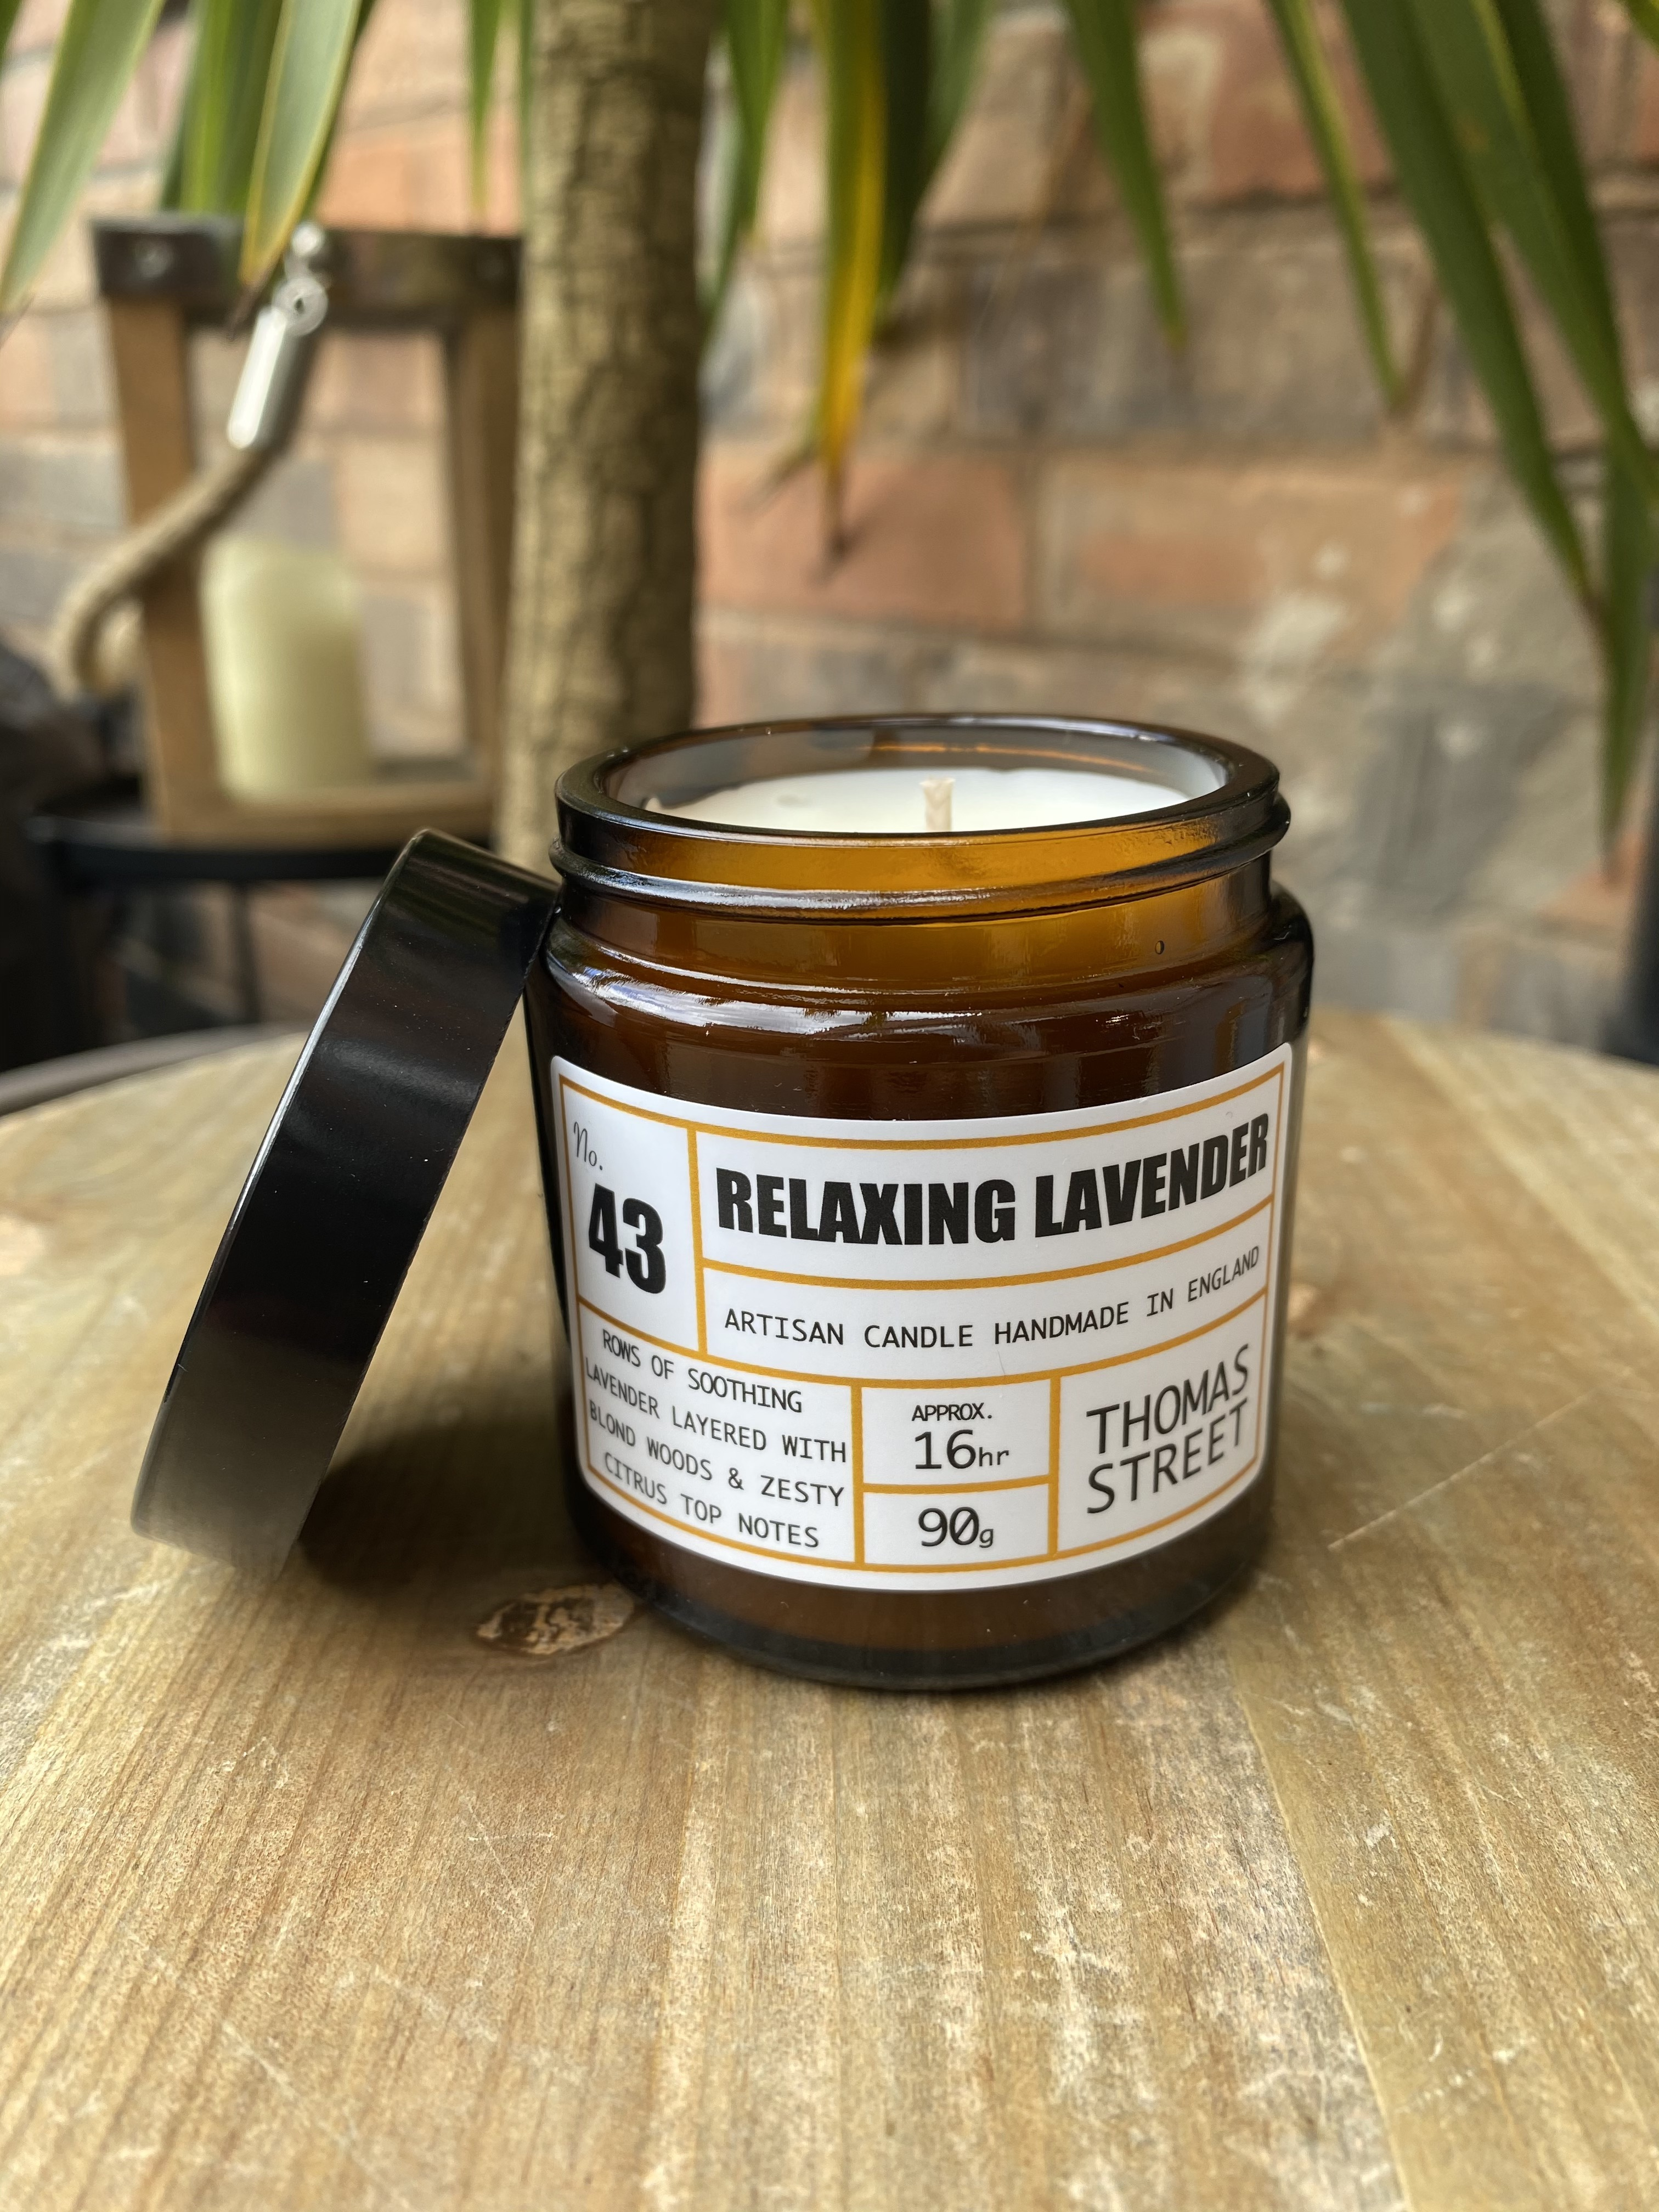 Apothecary No.43 Relaxing Lavender Candle